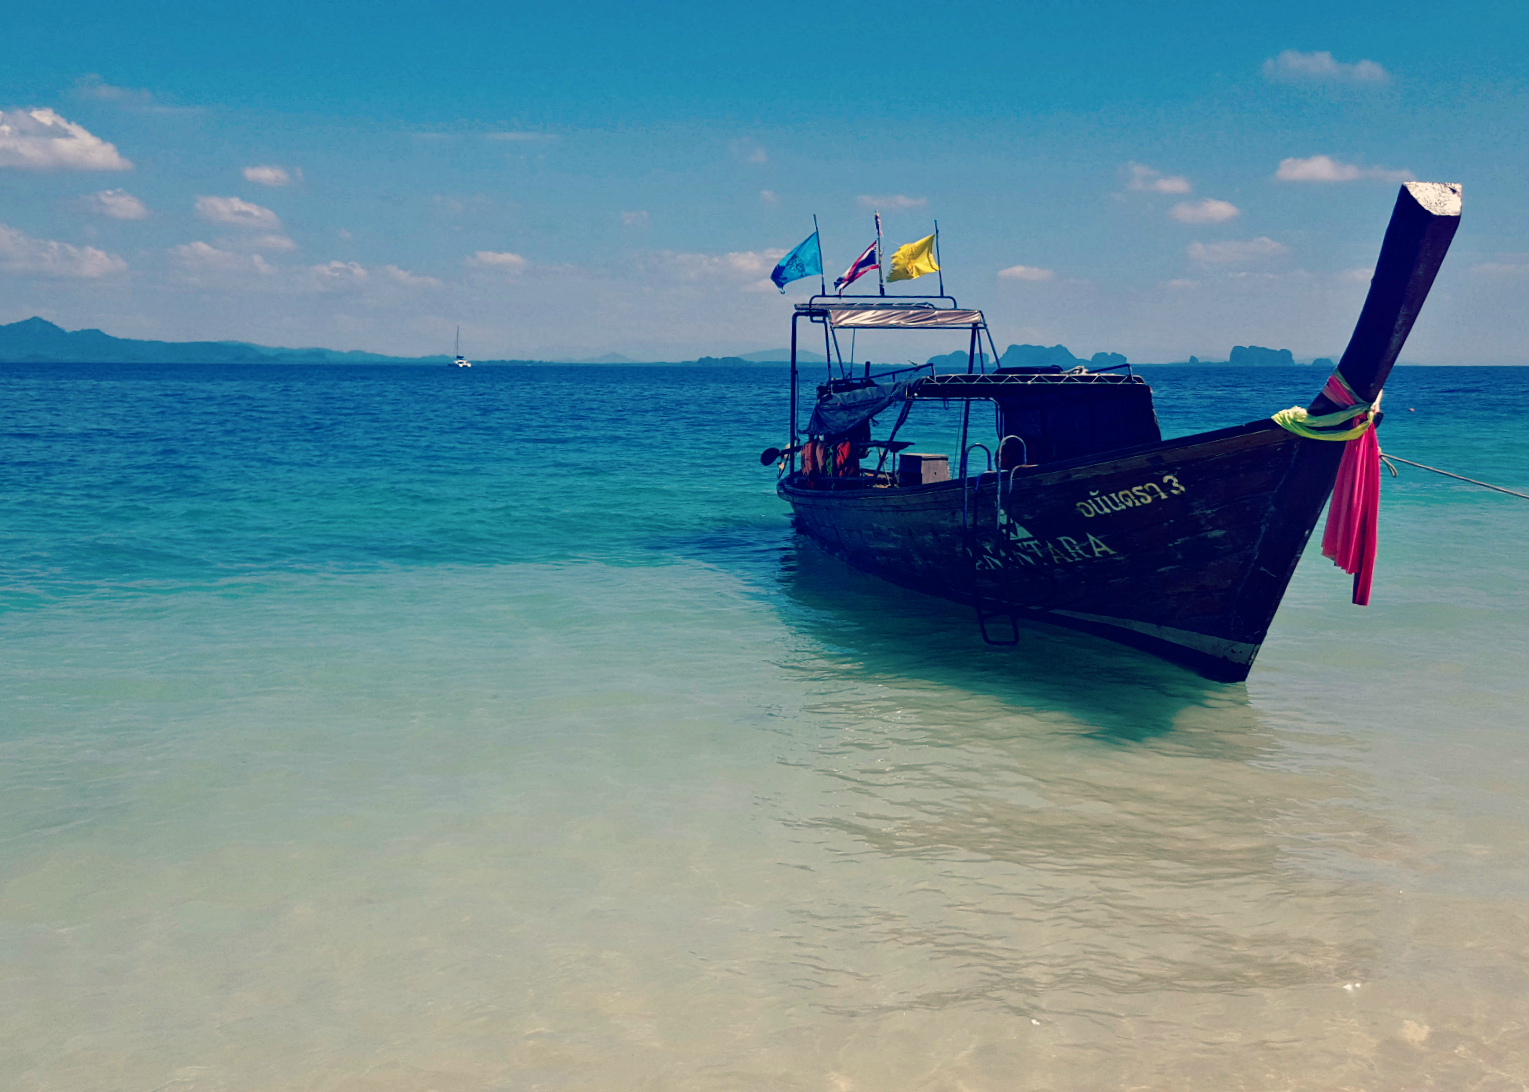 Too tall in Trang, and Thailand's idyllic islands